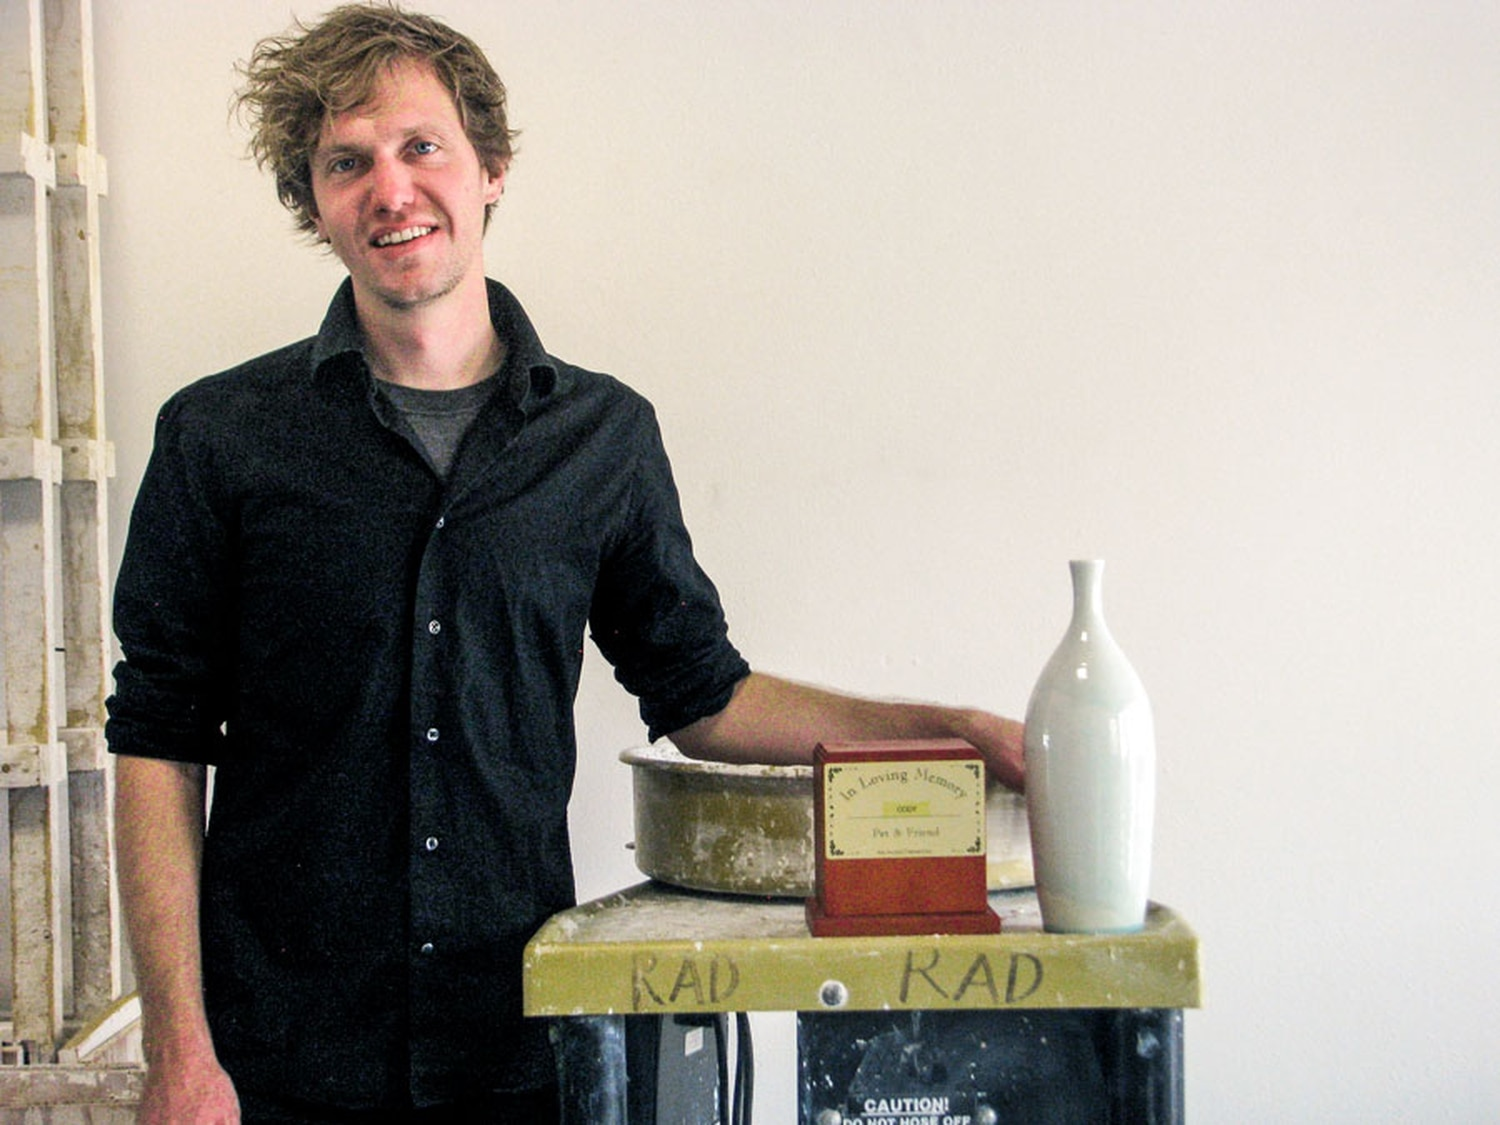 Parting Stone founder Justin Crowe has set out to revolutionize the cremation industry.